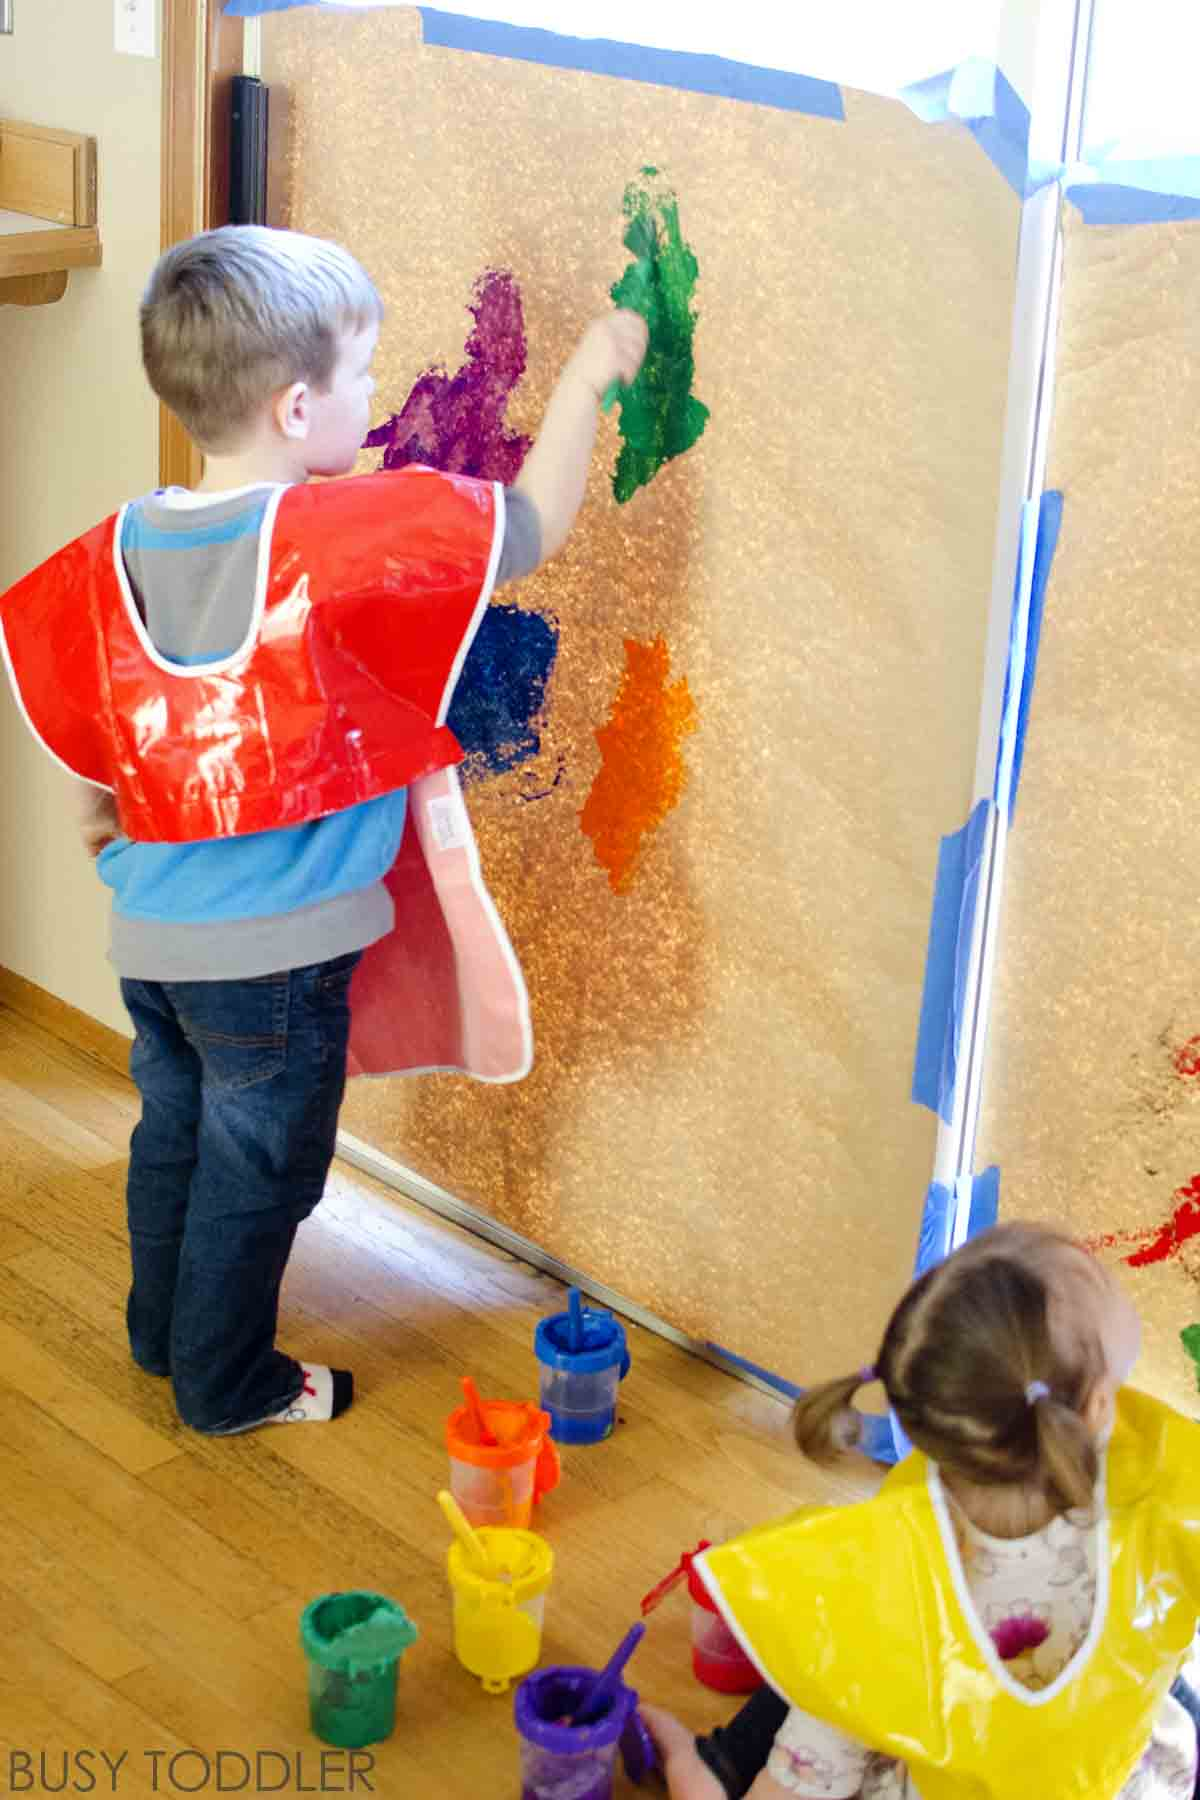 GIANT PAINTING TODDLER ART: What a great toddler activity! An easy indoor toddler activity painting on a huge space; preschool art activity